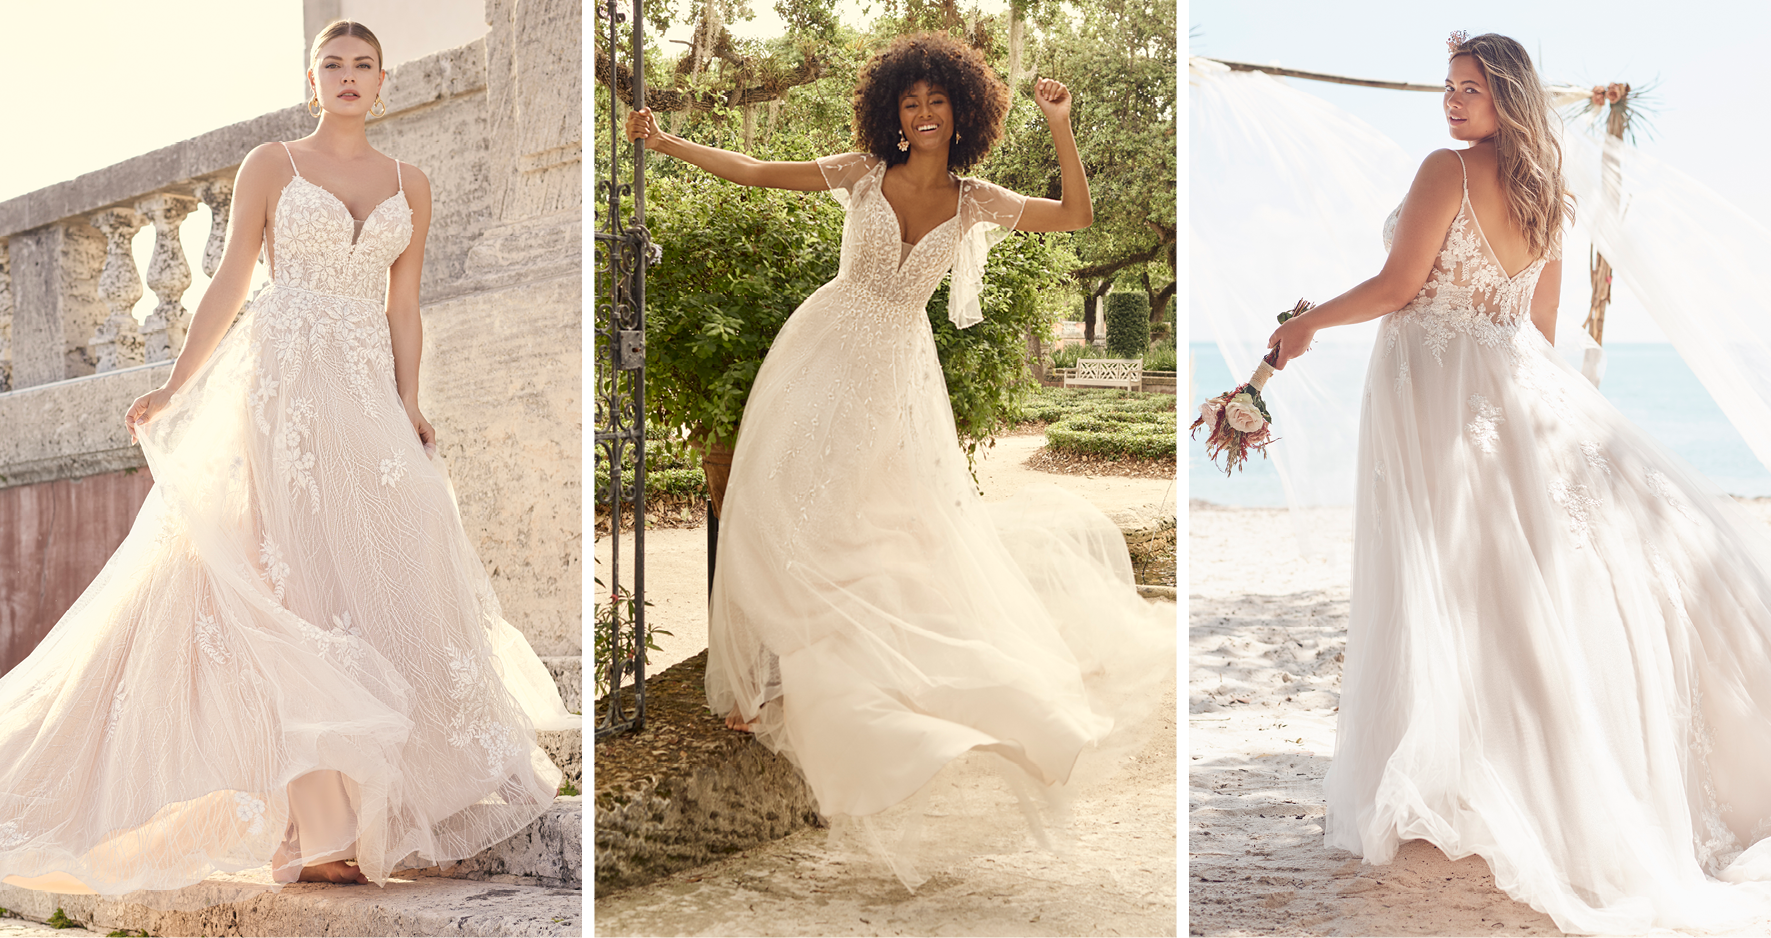 Collage of Brides Wearing Lightweight A-line Wedding Dresses by Maggie Sottero for Pear-Shaped Body Types